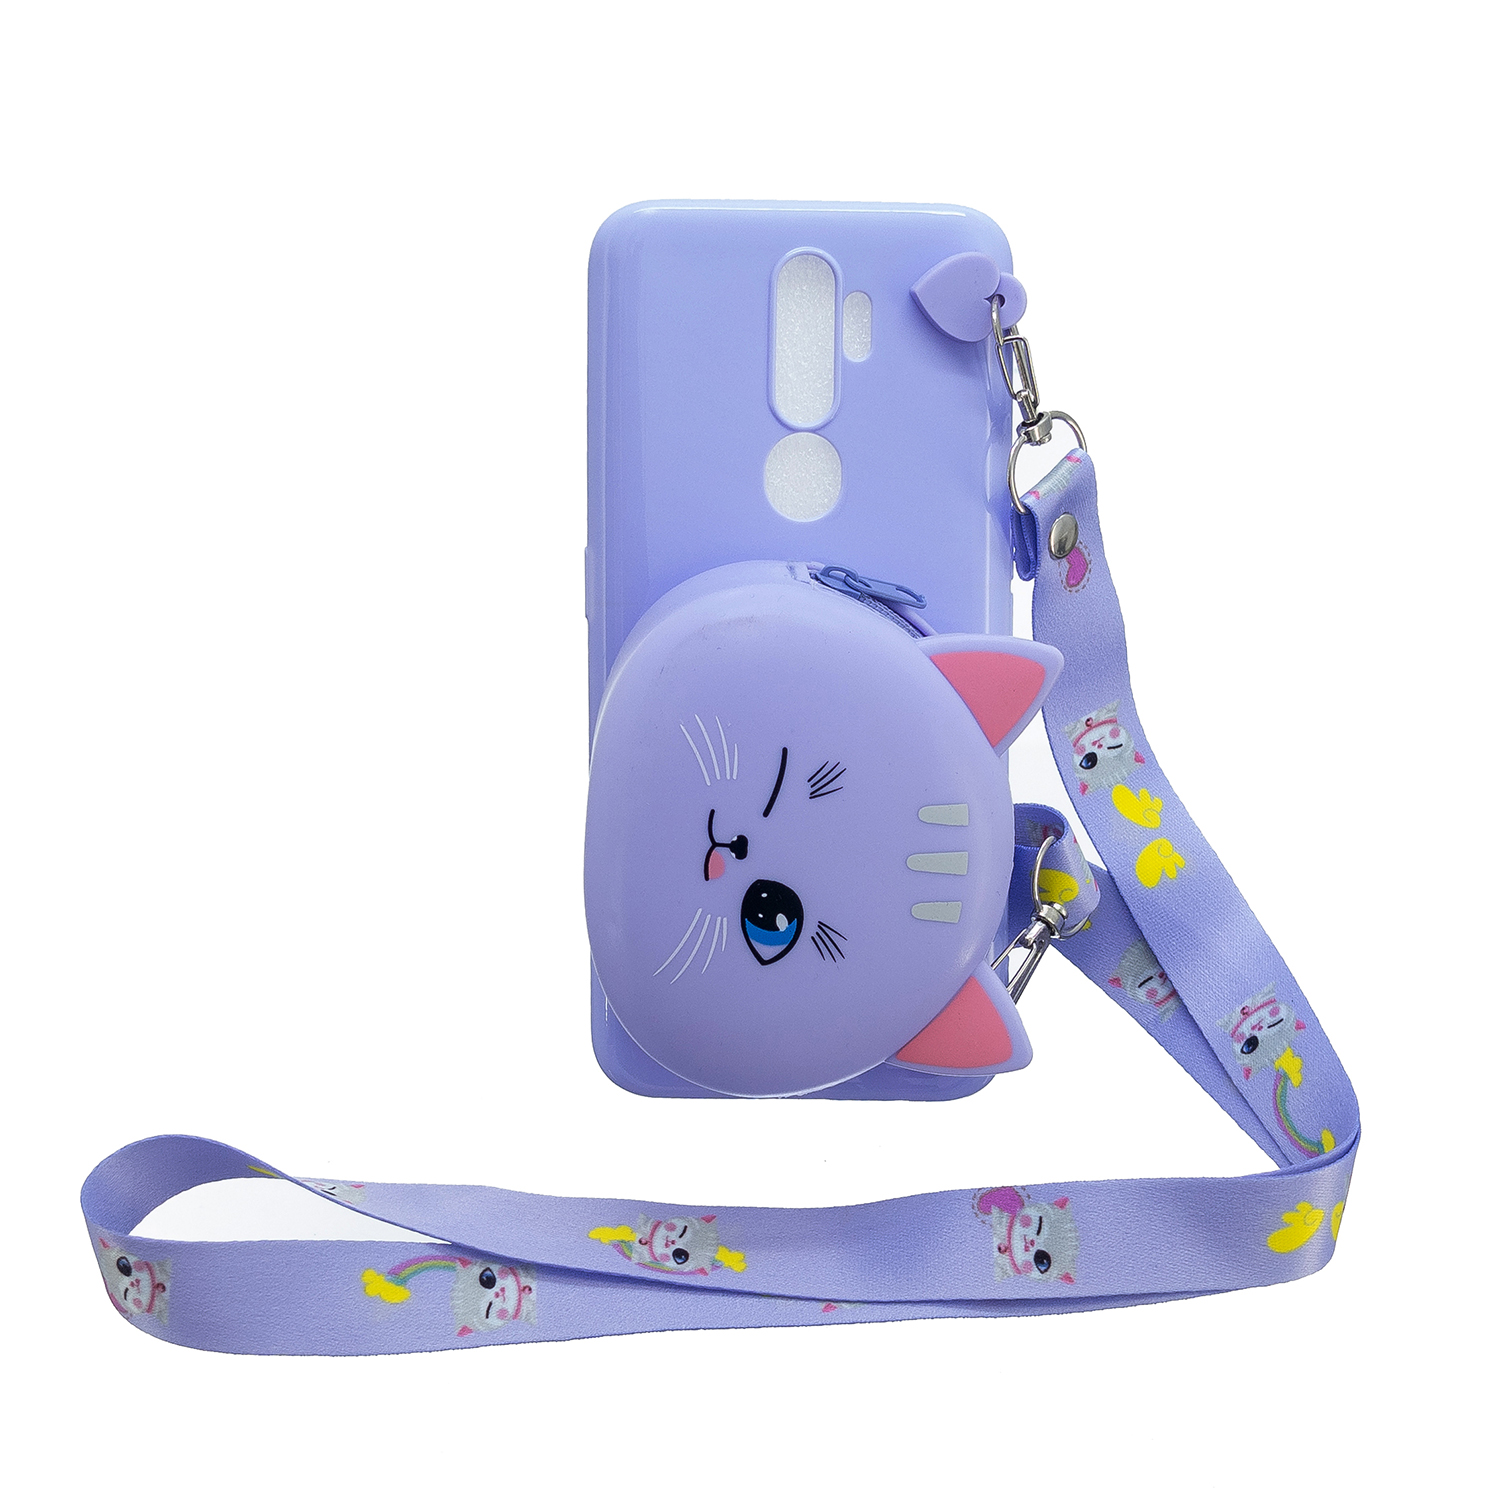 For OPPO A83/A9 2020 Cellphone Case Mobile Phone TPU Shell Shockproof Cover with Cartoon Cat Pig Panda Coin Purse Lovely Shoulder Starp  Purple